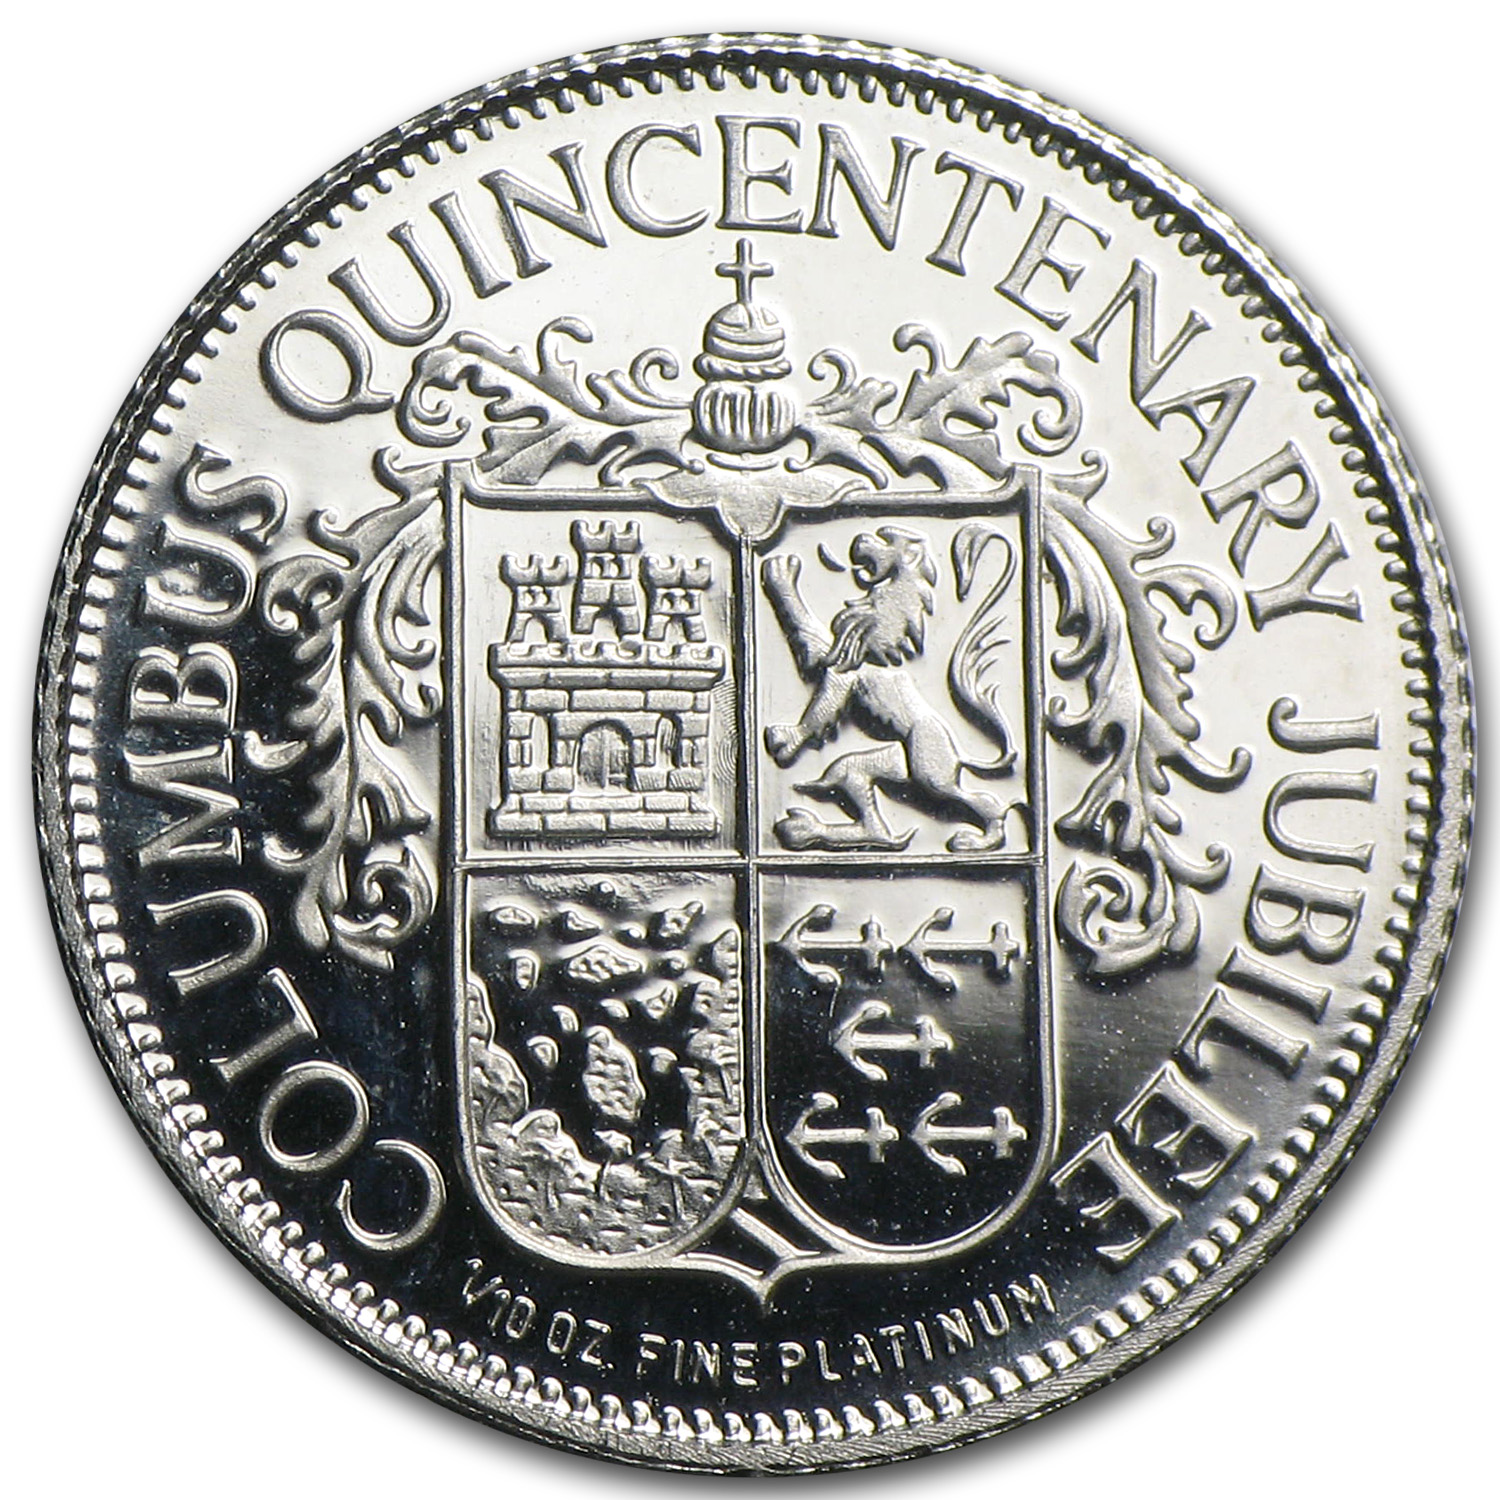 1/10 oz Platinum Round (Secondary Market) .999+ Fine